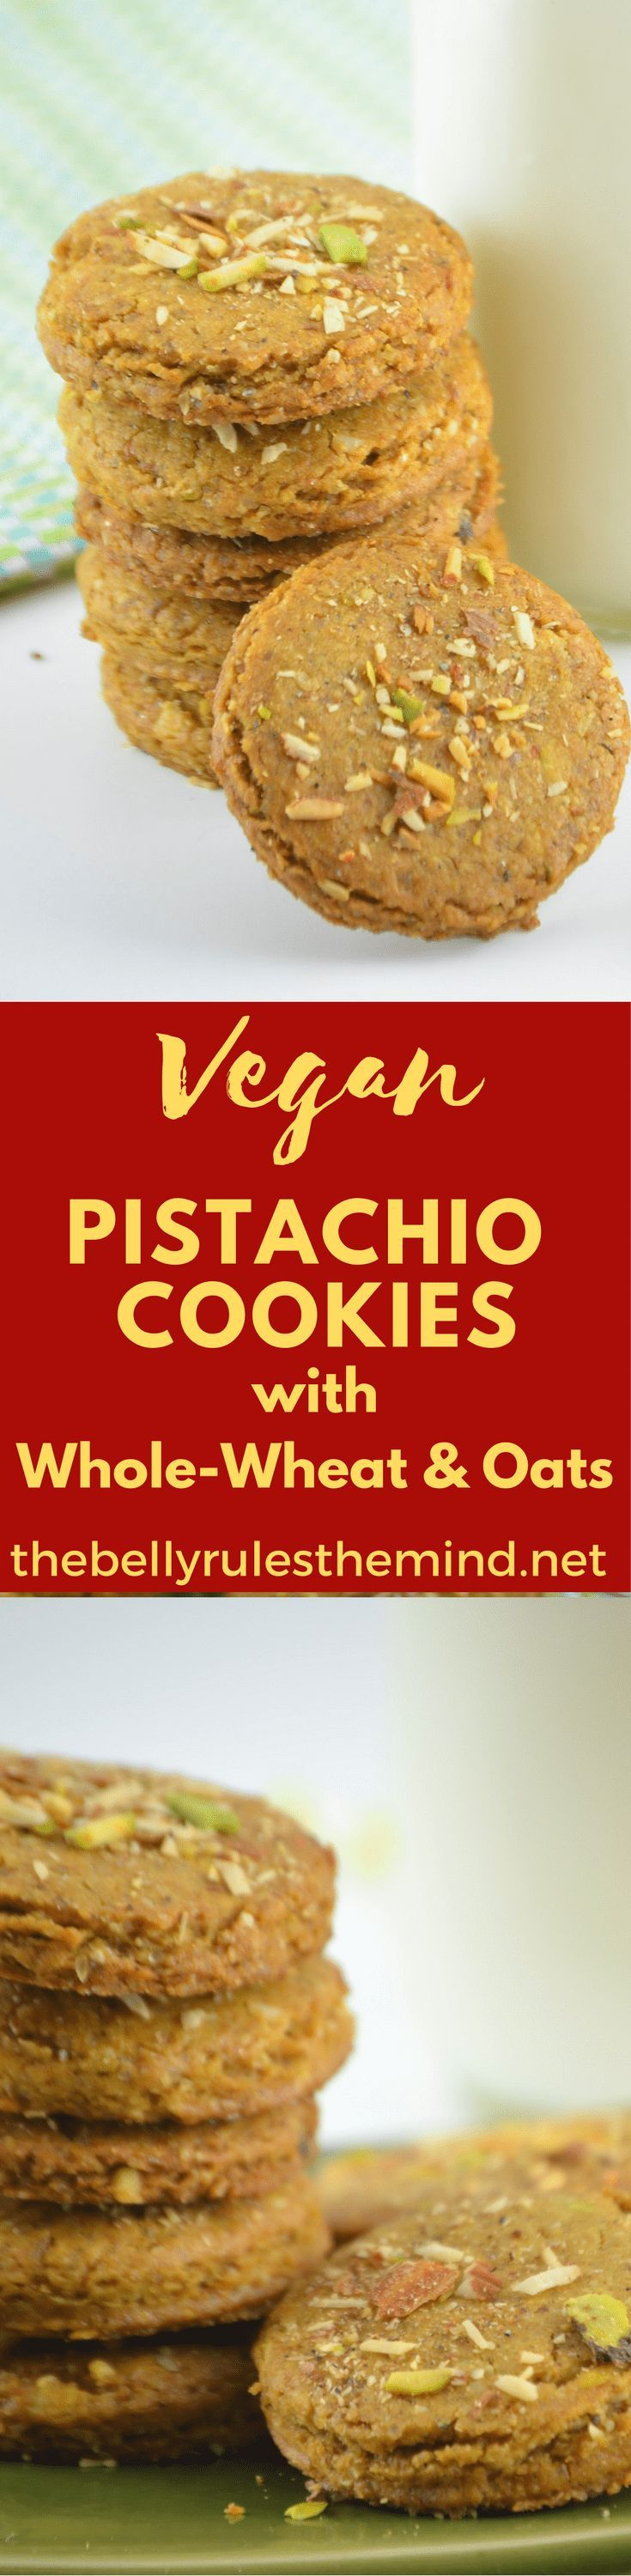 These Cookies are buttery and crumbly made with whole wheat & Oats with lots of Pistachios. Super easy Pistachio cookies recipe that anyone can make  @bellyrulesdmind #cookies  #pistachio #vegan #oats #baking